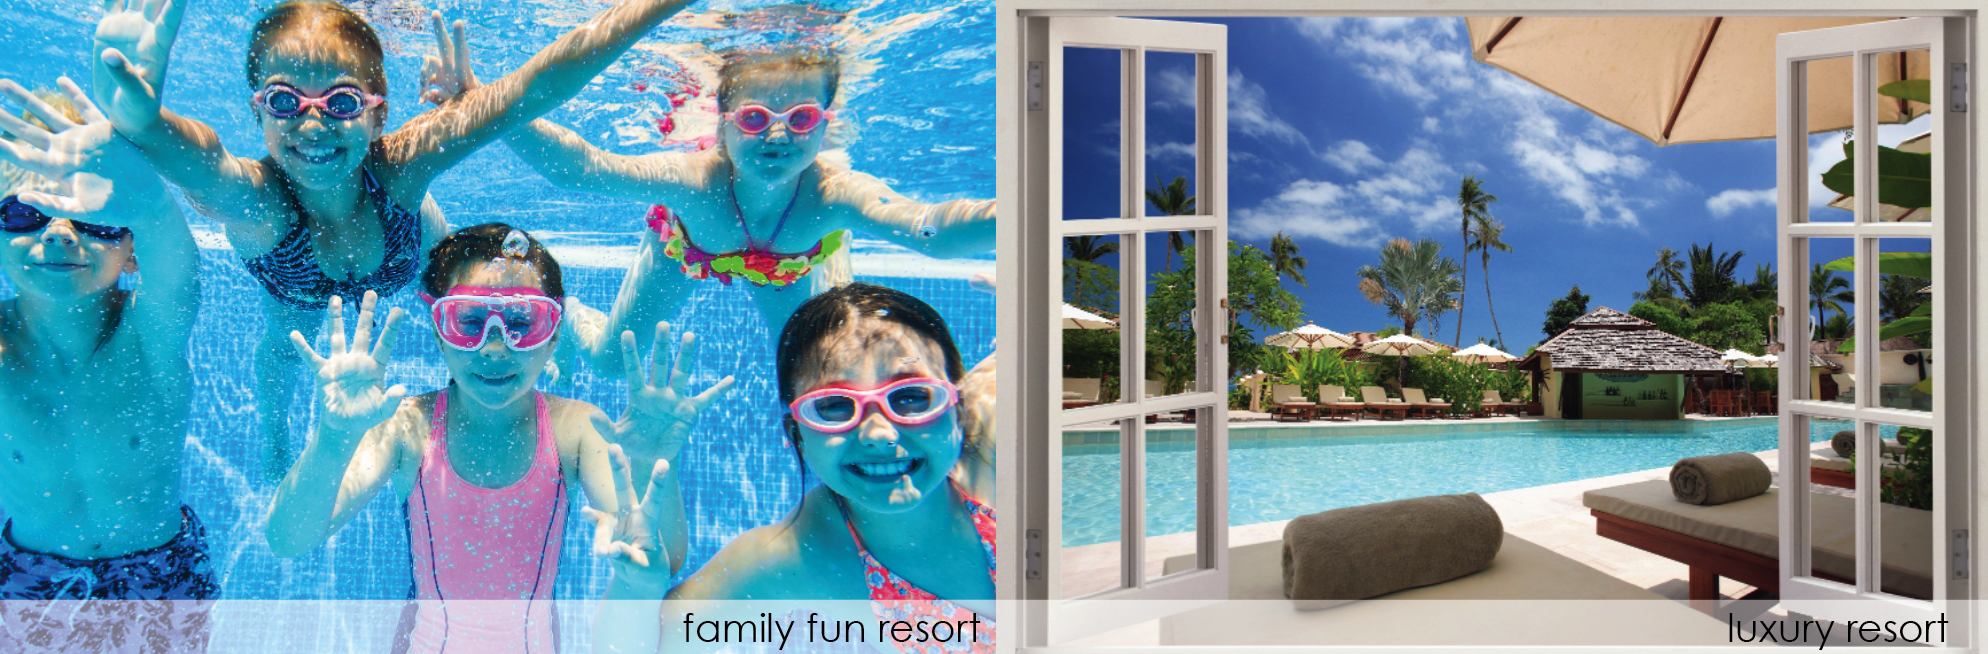 Hotel pool towels for luxury property or family friendly resort